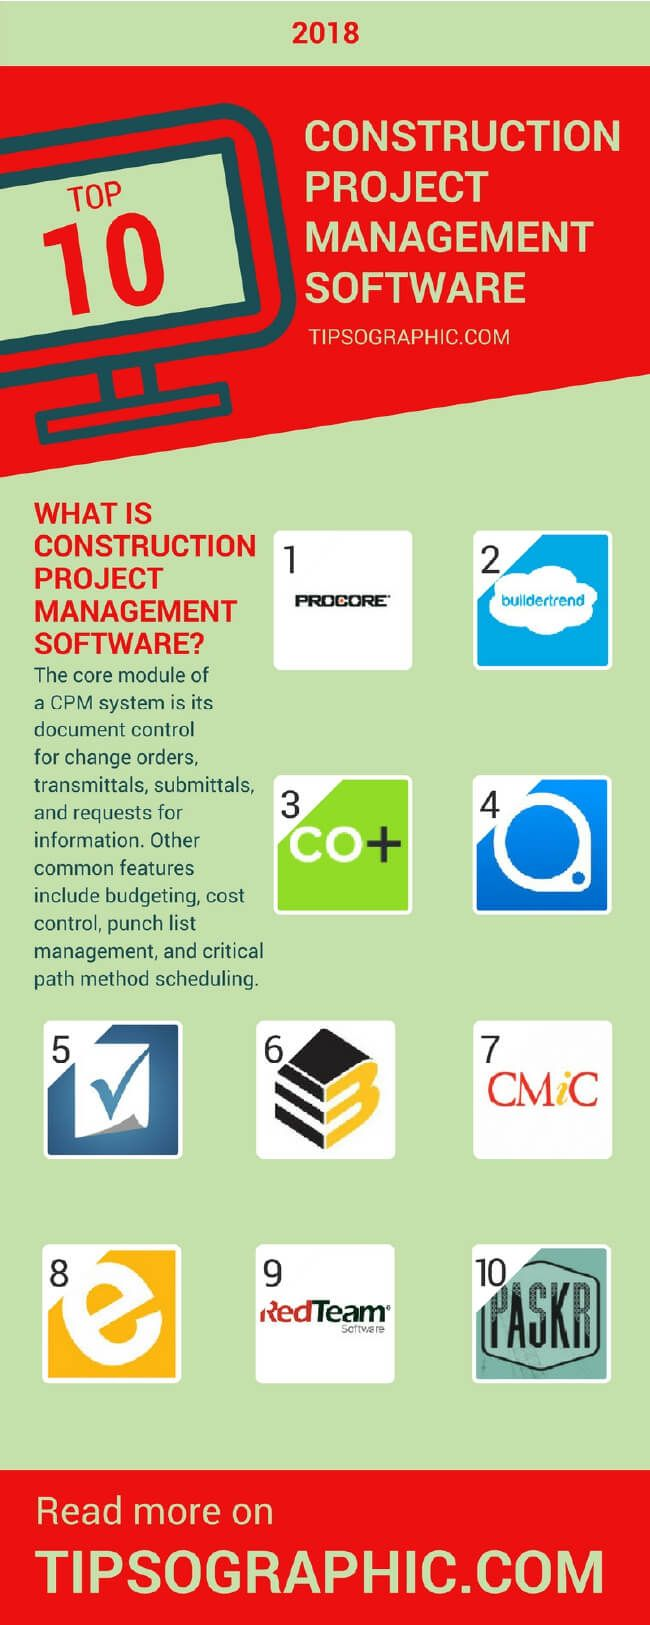 Image titled construction project management software 2018 best systems